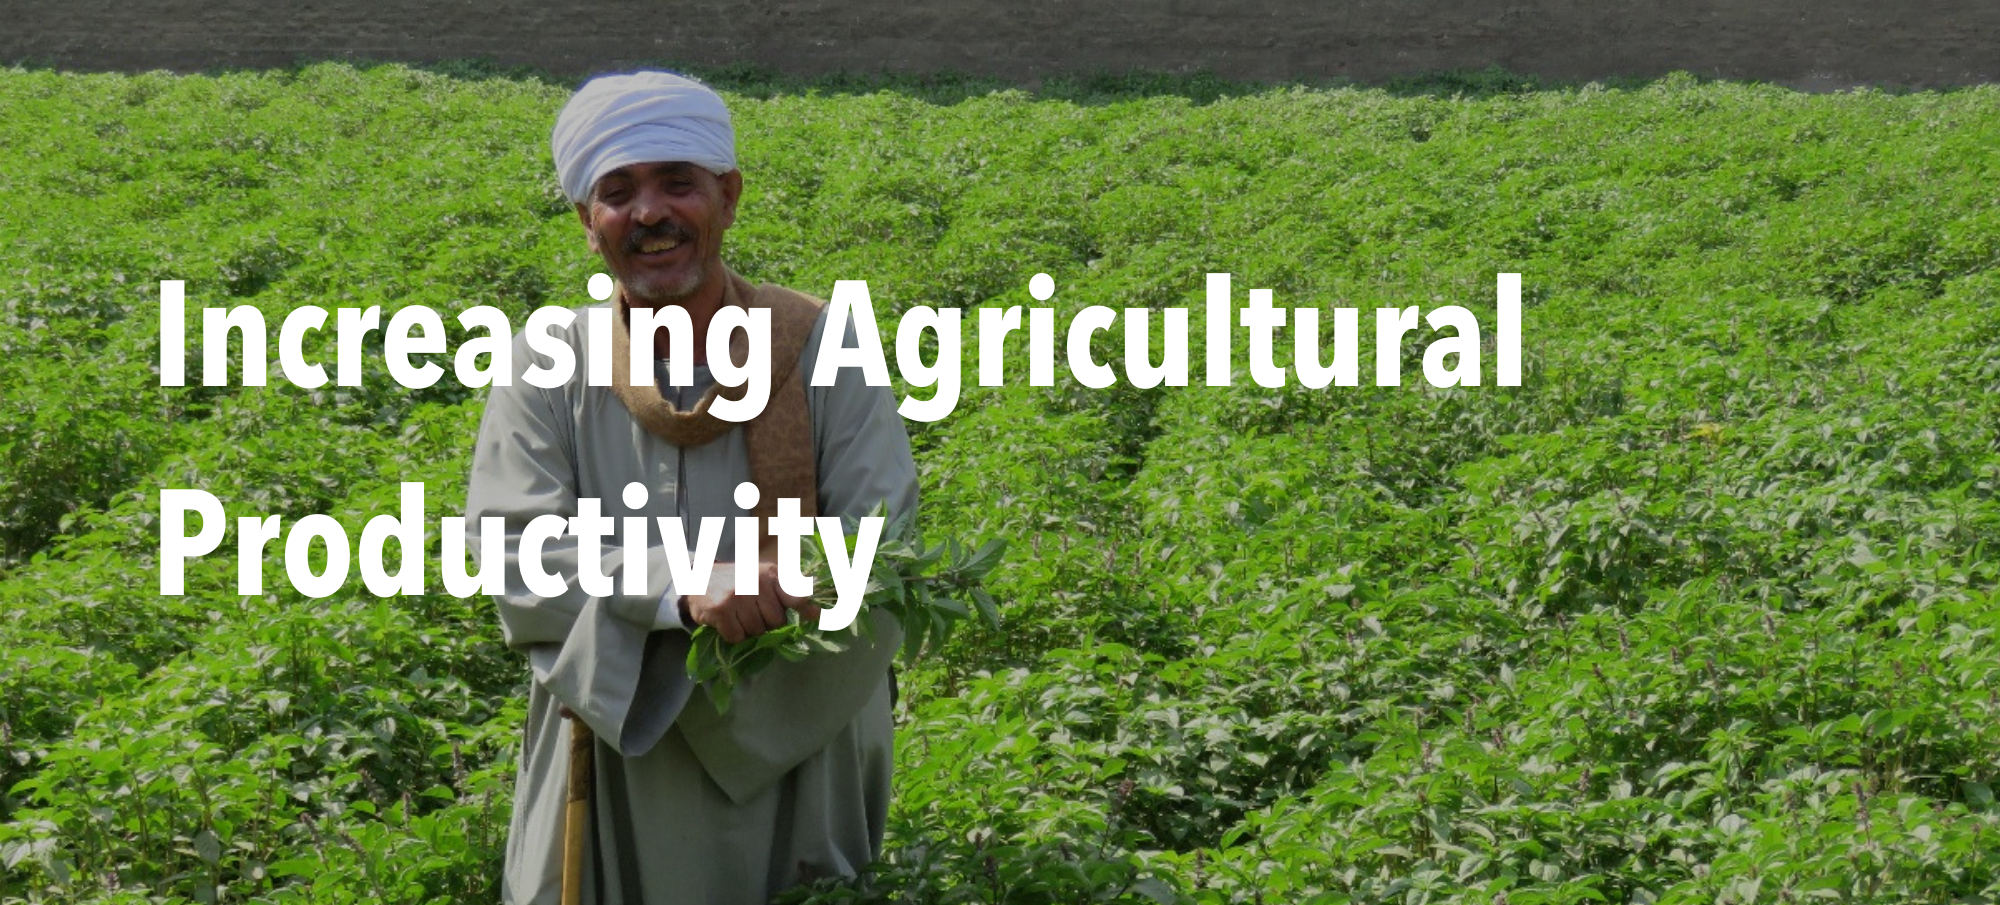 """Man in field of basil with header text """"Increasing Agricultural Productivity"""""""